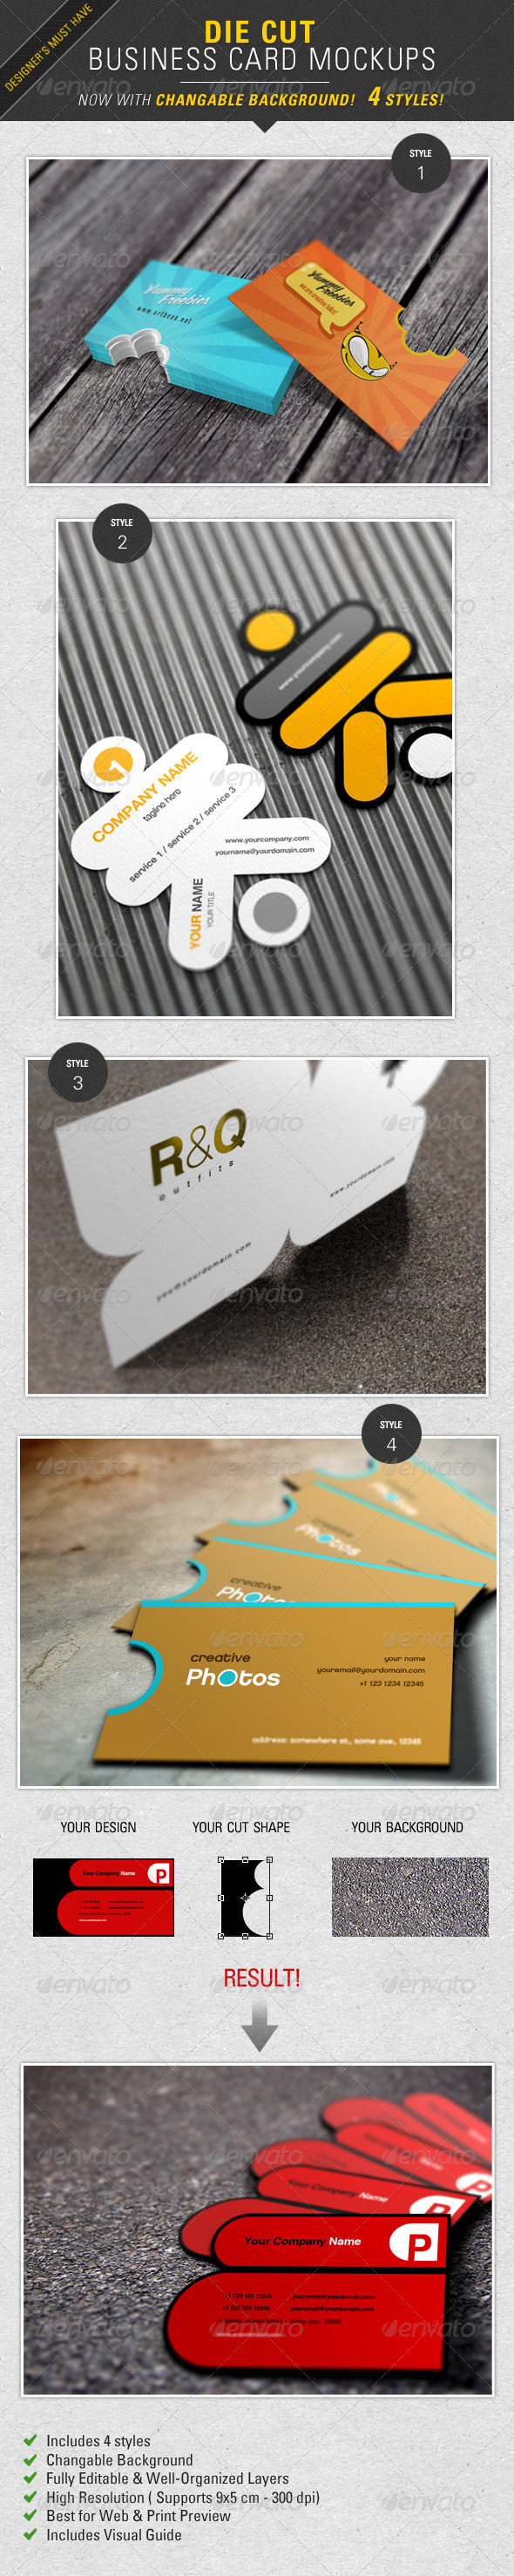 GraphicRiver Die Cut Business Card Mockup 2372236